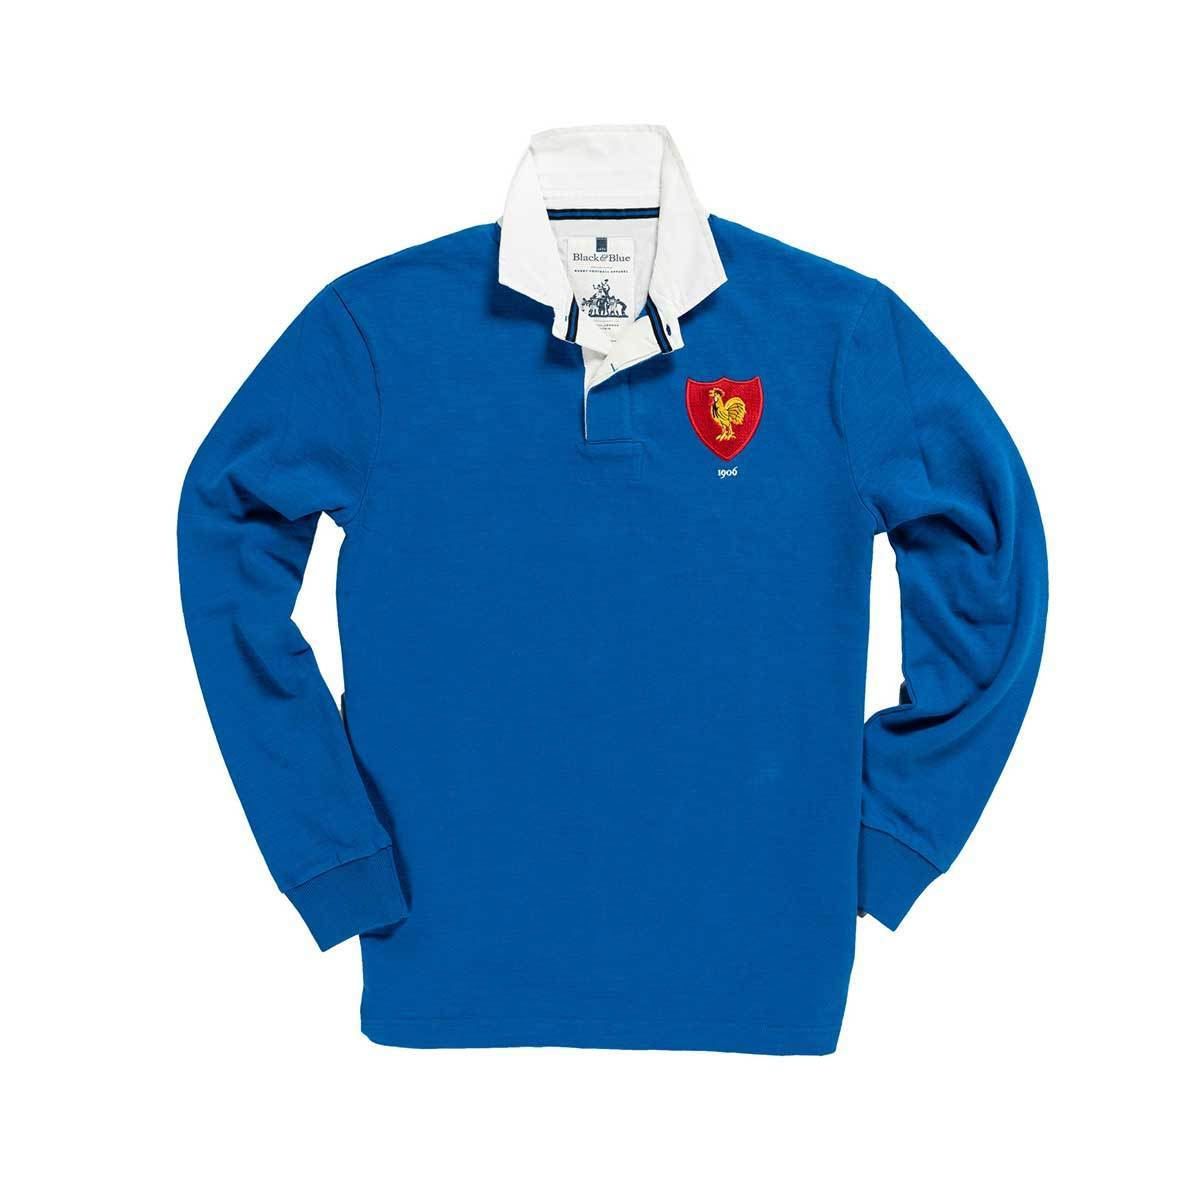 Black & Blue 1871 | France 1906 Rugby Shirt | Heavy Cotton Rugby Shirt